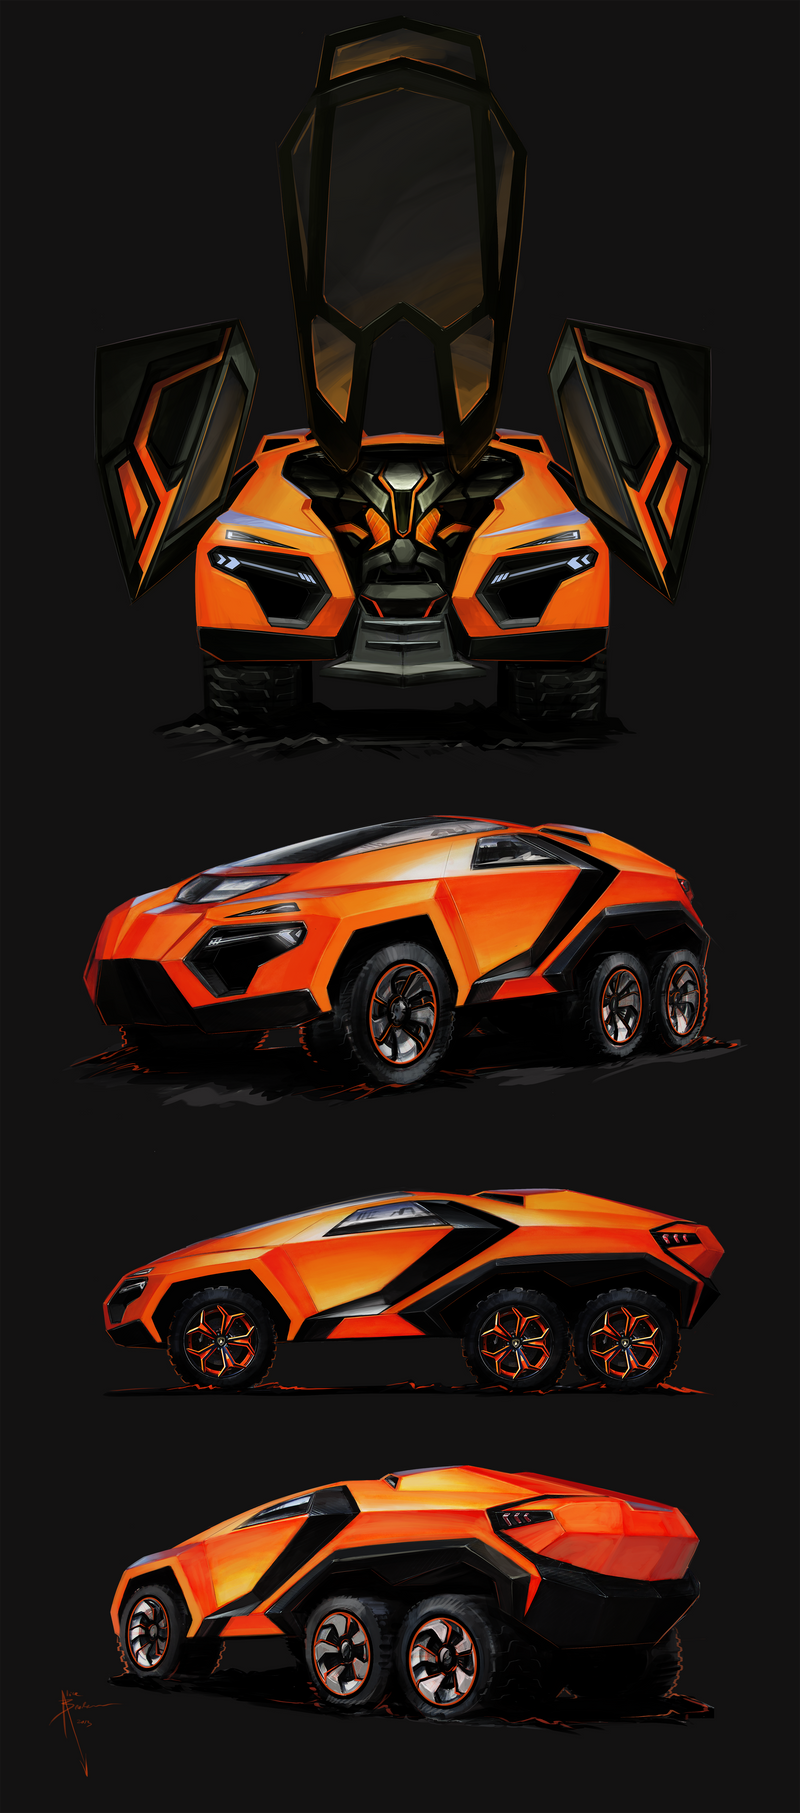 6x6 Lambo Renderings by Hydrothrax